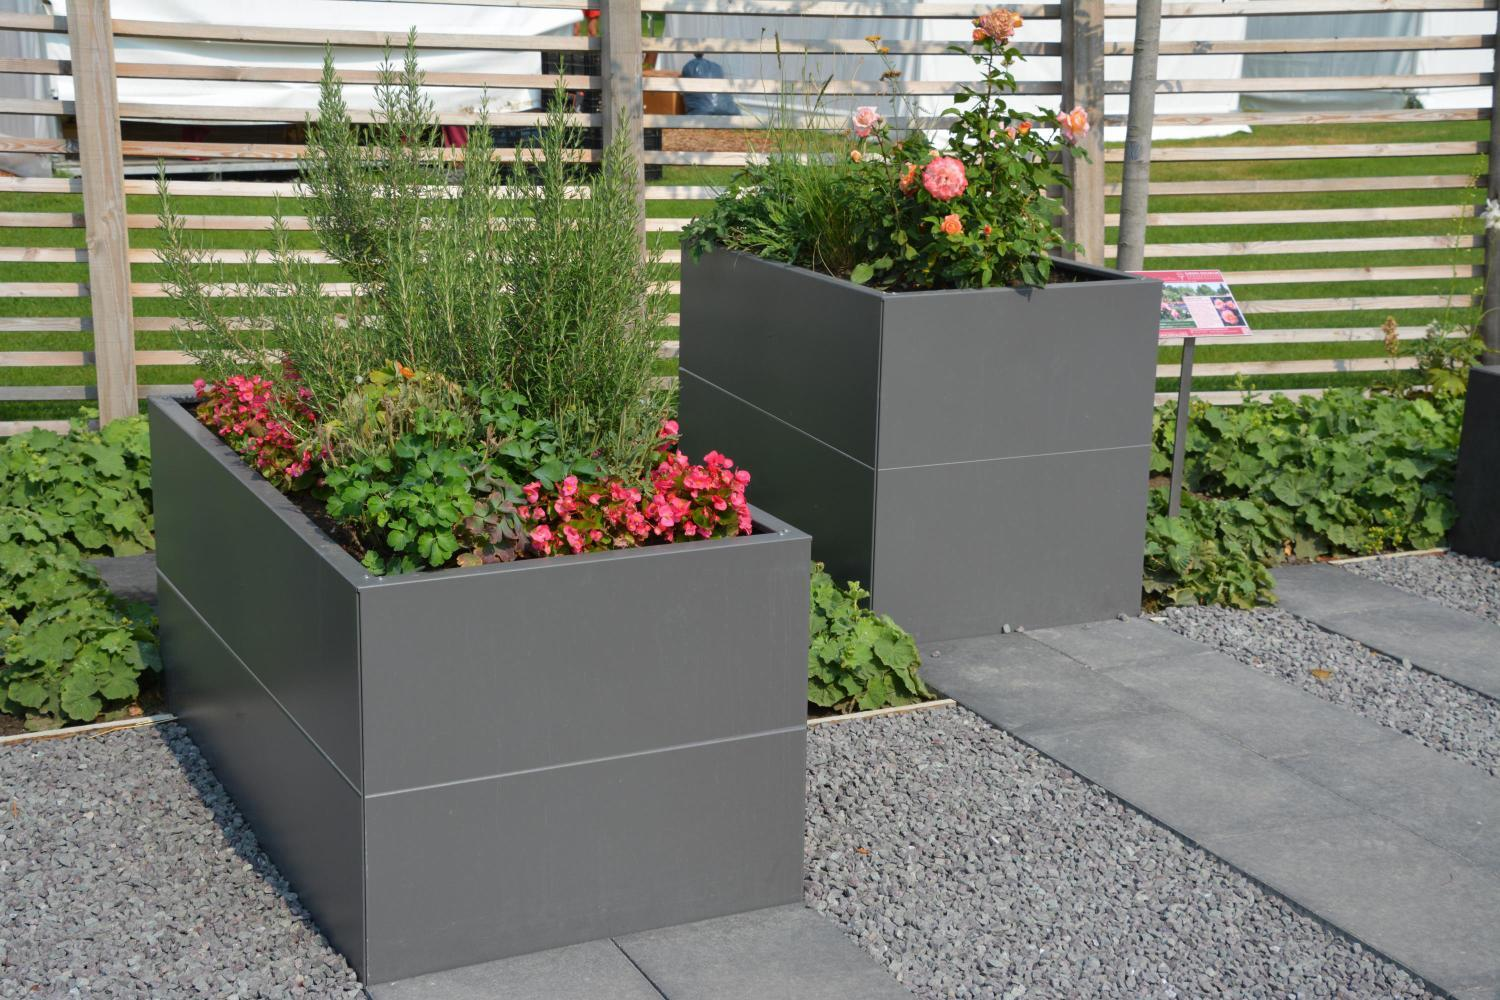 hochbeet urban gardening aus metall f r jeden garten terasse. Black Bedroom Furniture Sets. Home Design Ideas